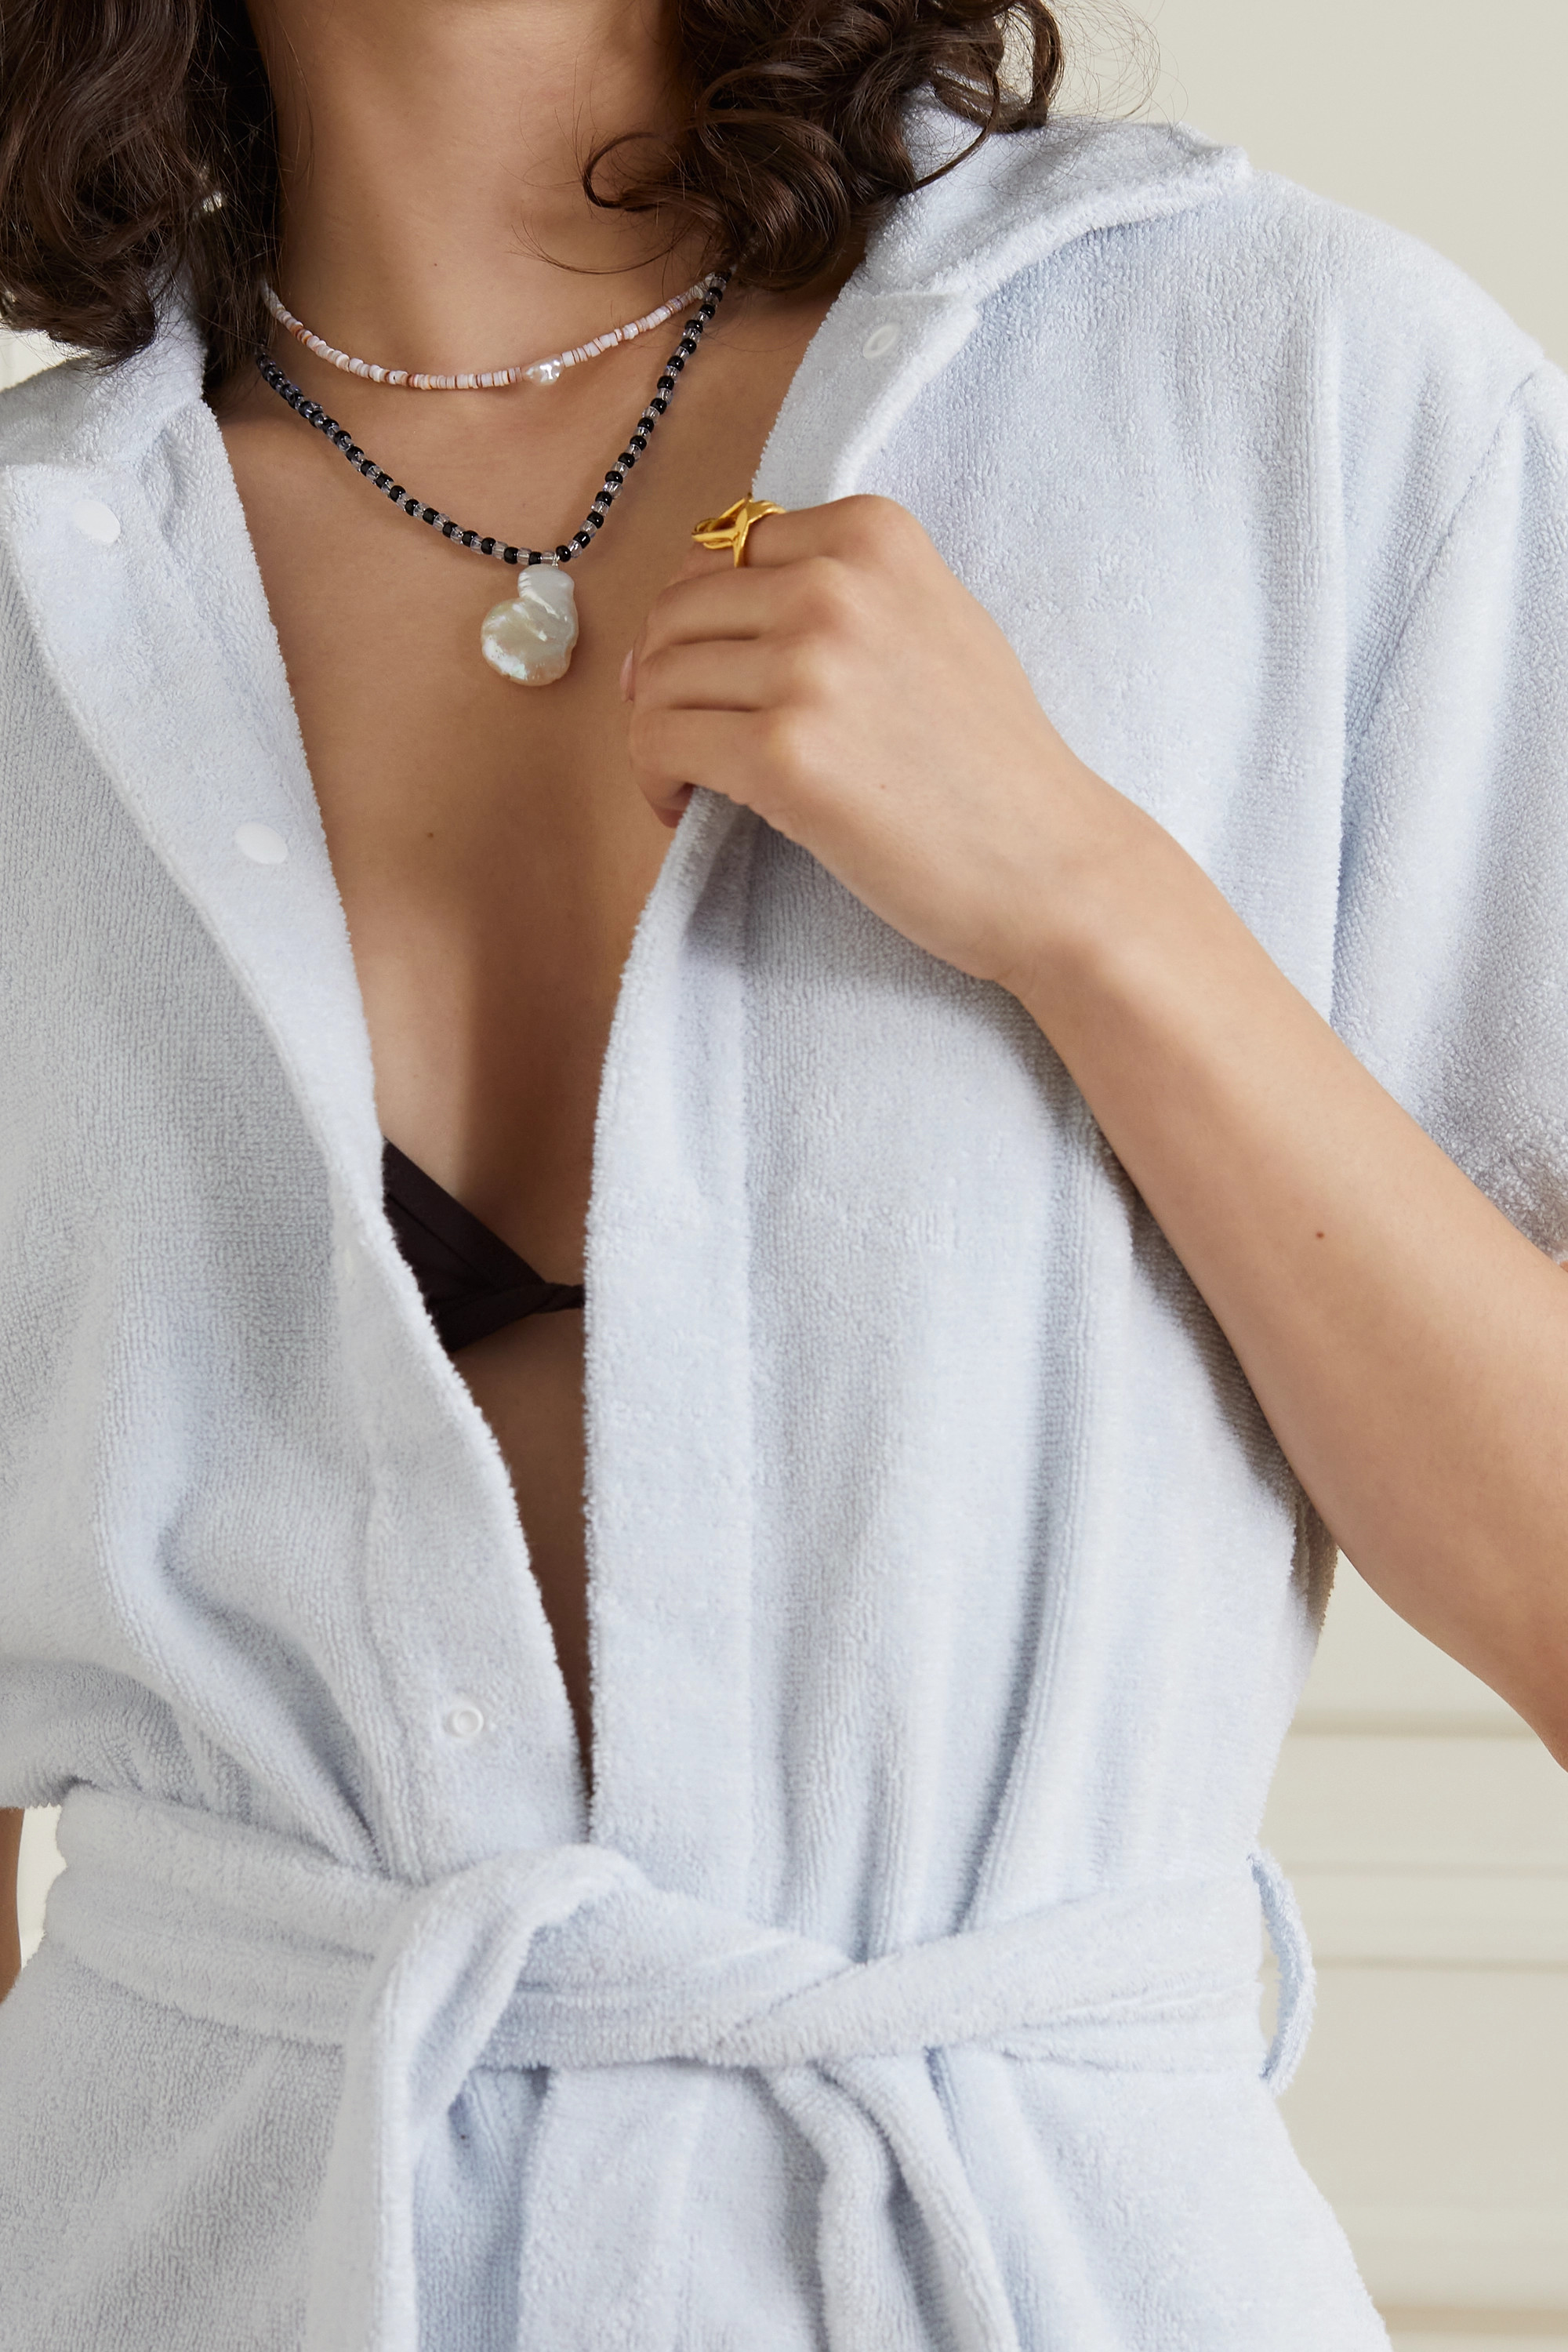 Santangelo Shoom silver, shell and pearl necklace